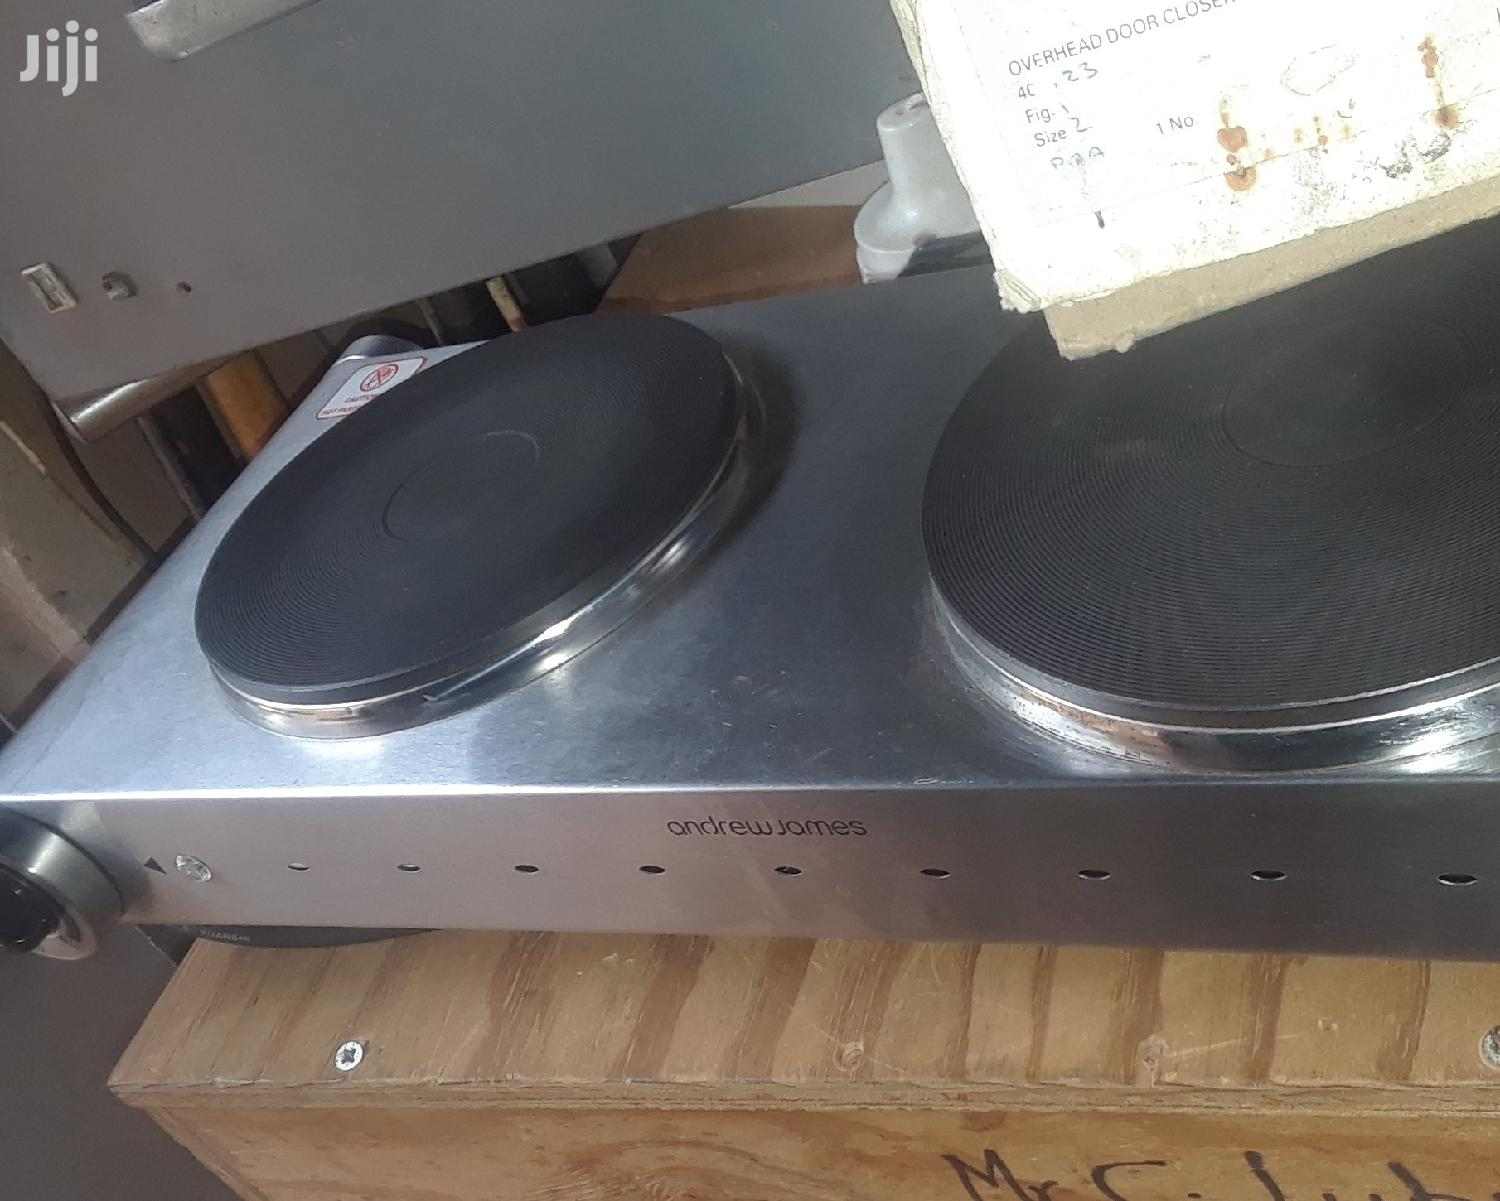 Hot Plate, New From Uk